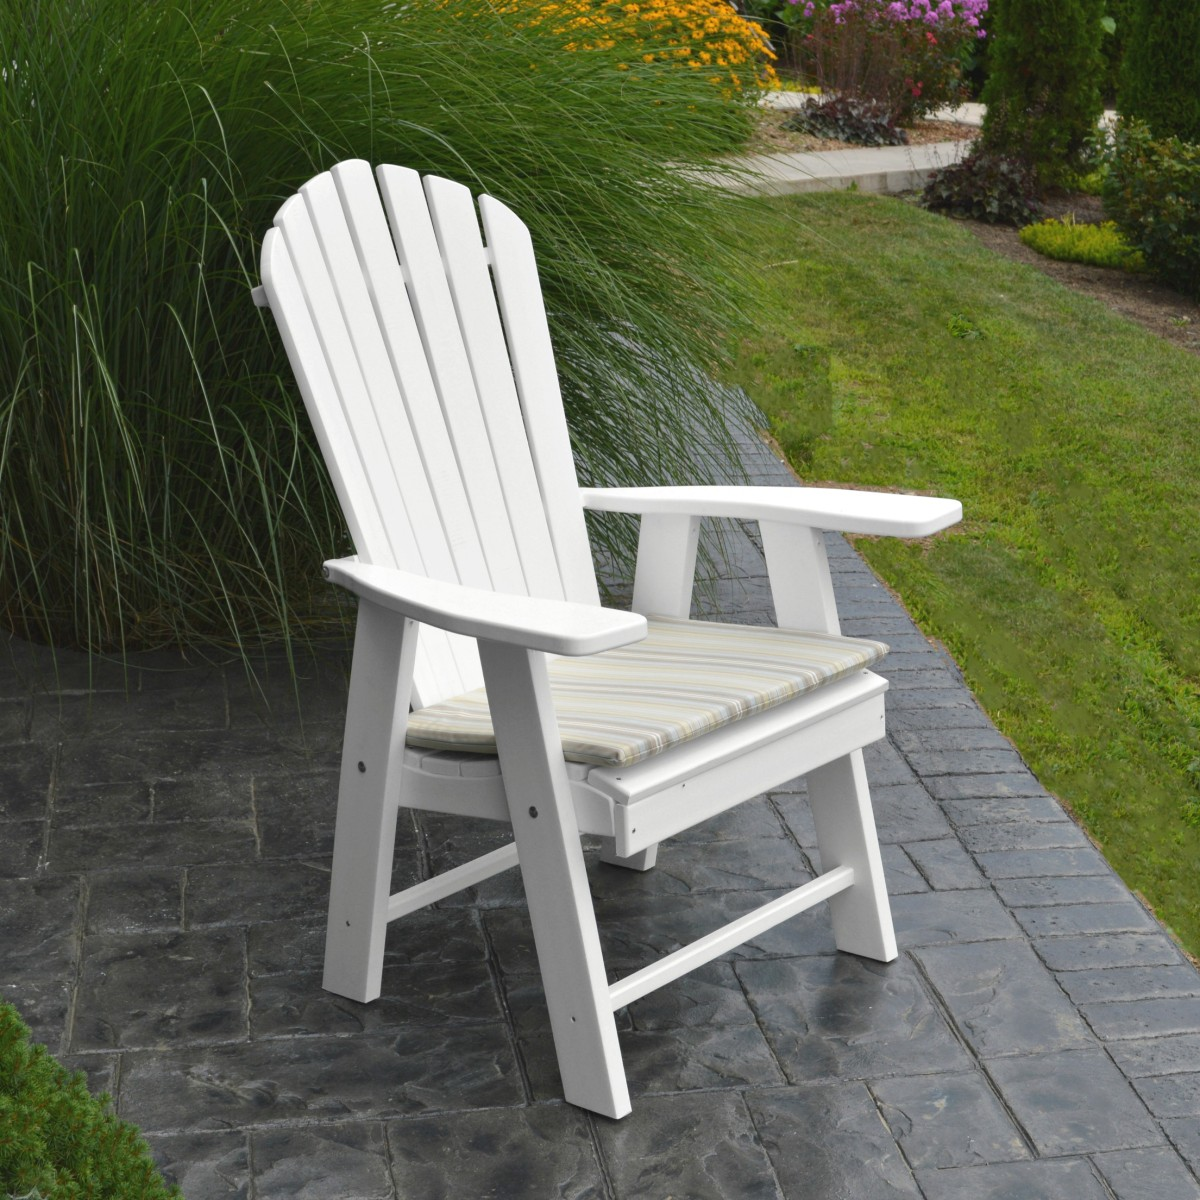 Upright Adirondack Chair & Upright Adirondack Chair » Amish Woodwork